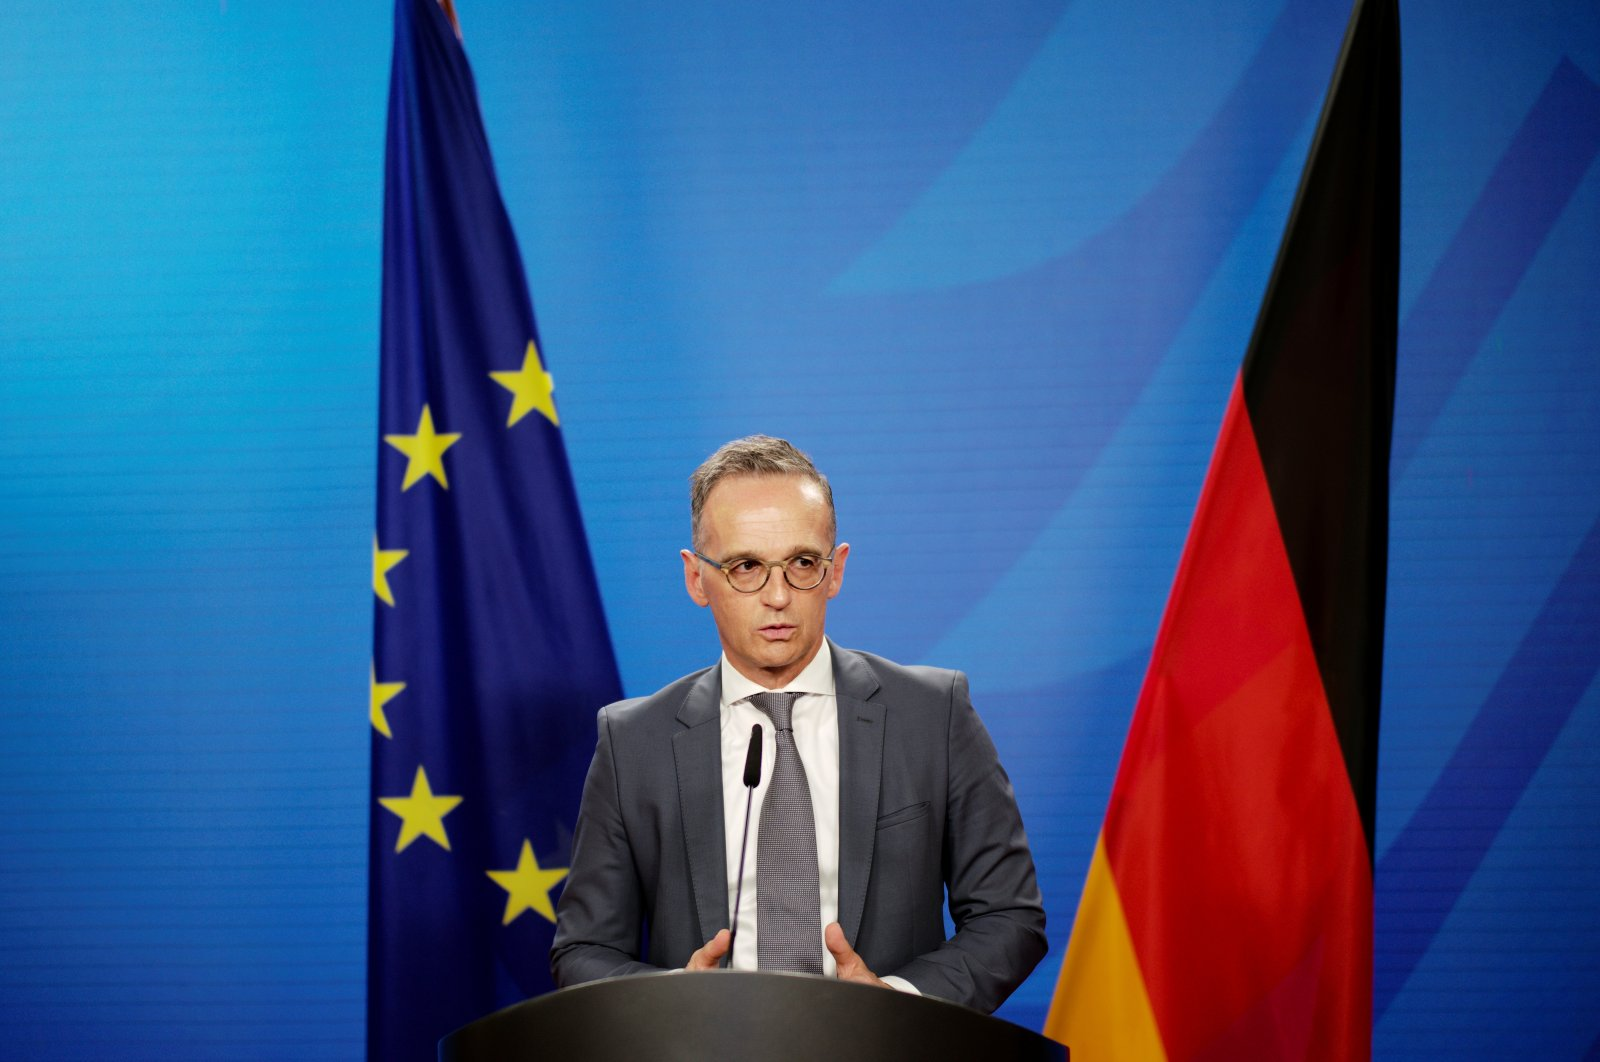 German Foreign Minister Heiko Maas briefs the media about the ongoing German evacuation operation and current situation in Afghanistan, at the Foreign Ministry in Berlin, Germany, Aug. 18, 2021. (REUTERS Photo)